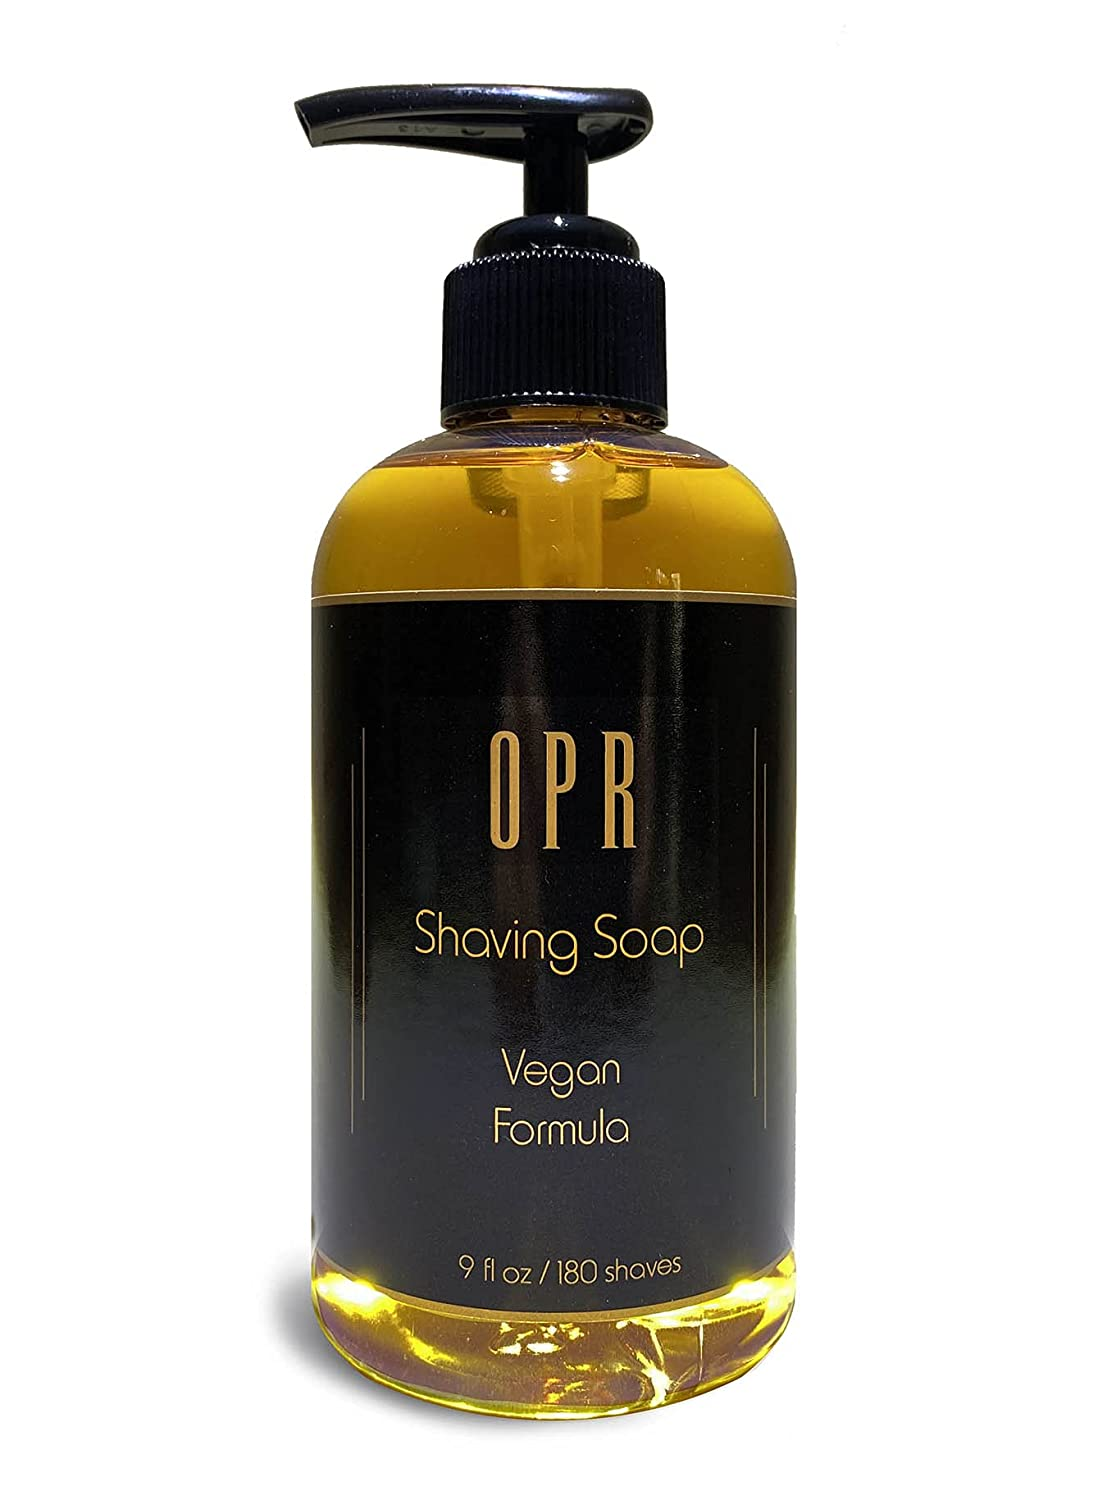 OPR's High quality new 5 ☆ very popular Vegan Shave Soap Provides and Skin Superior Nourishment Lu